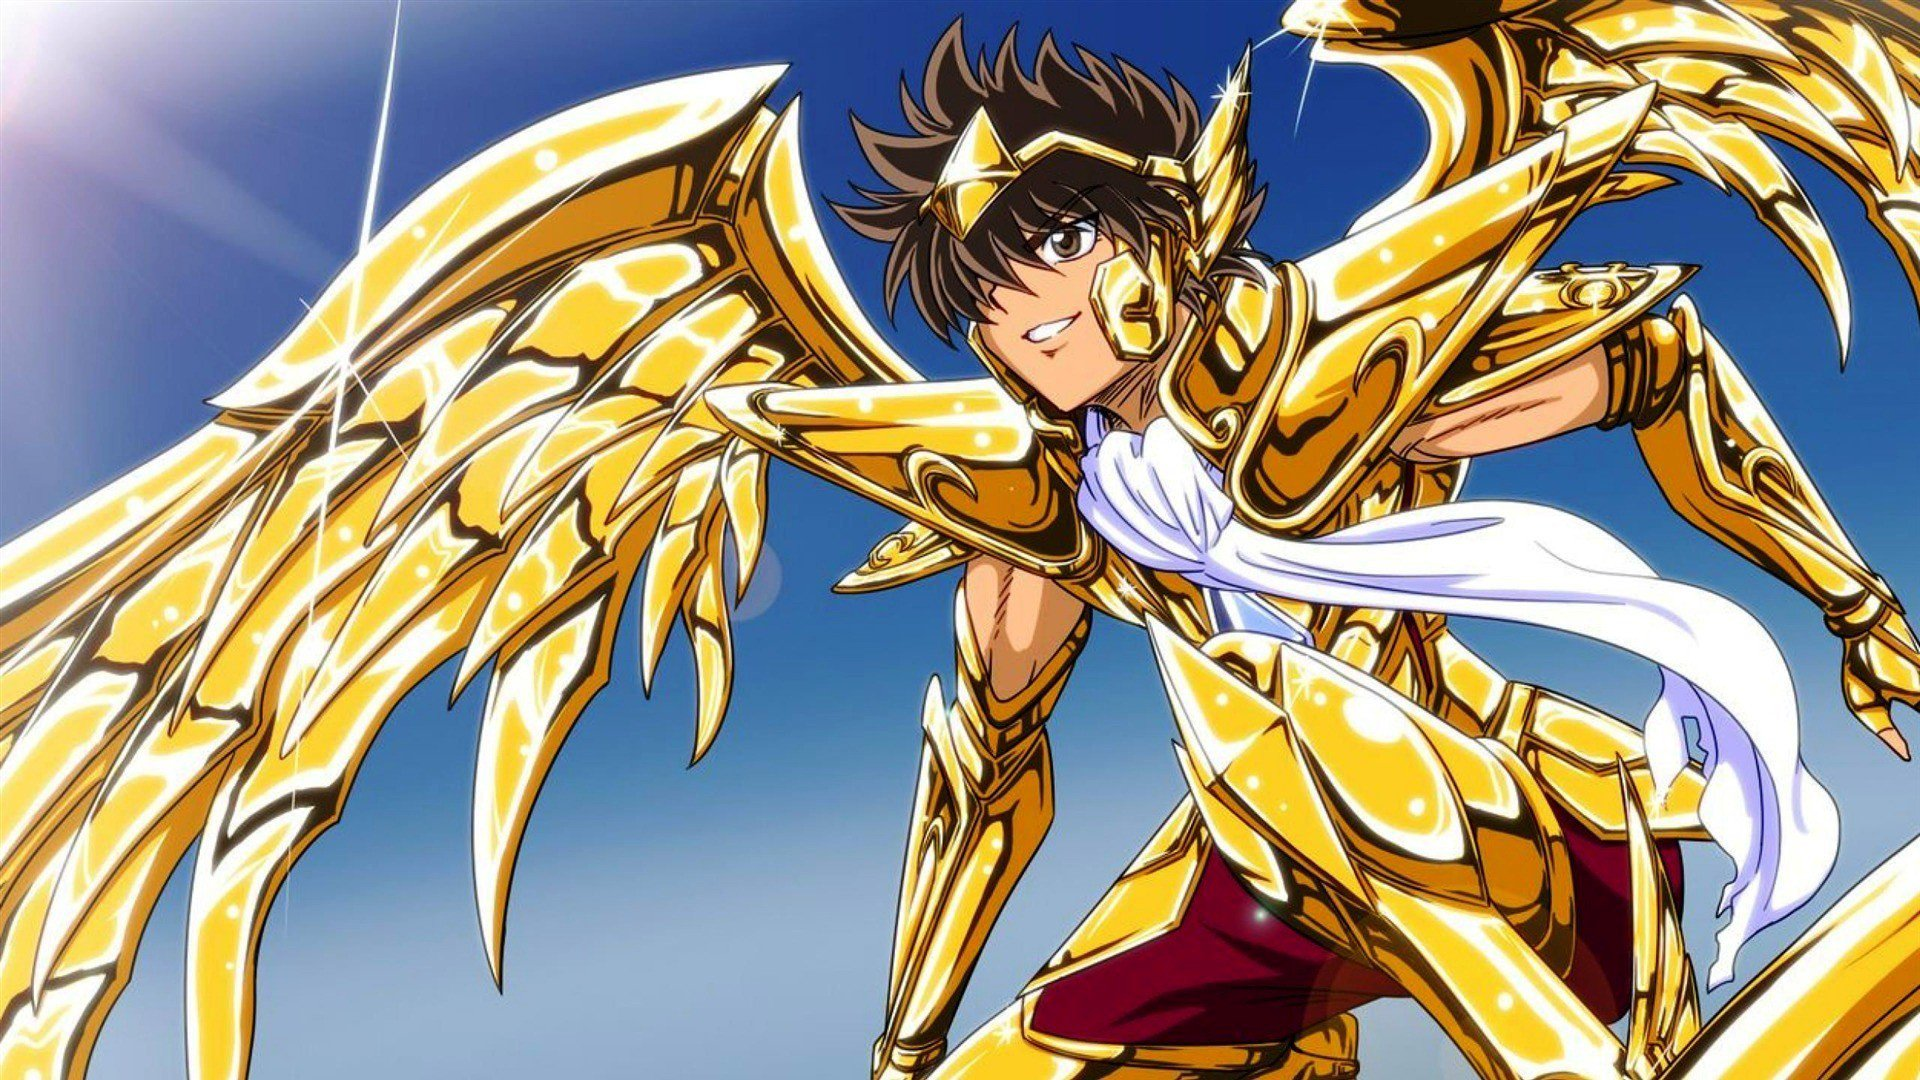 Caballeros Del Zodiaco Fondo Hd Saint Seiya Seiya 1920x1080 Download Hd Wallpaper Wallpapertip